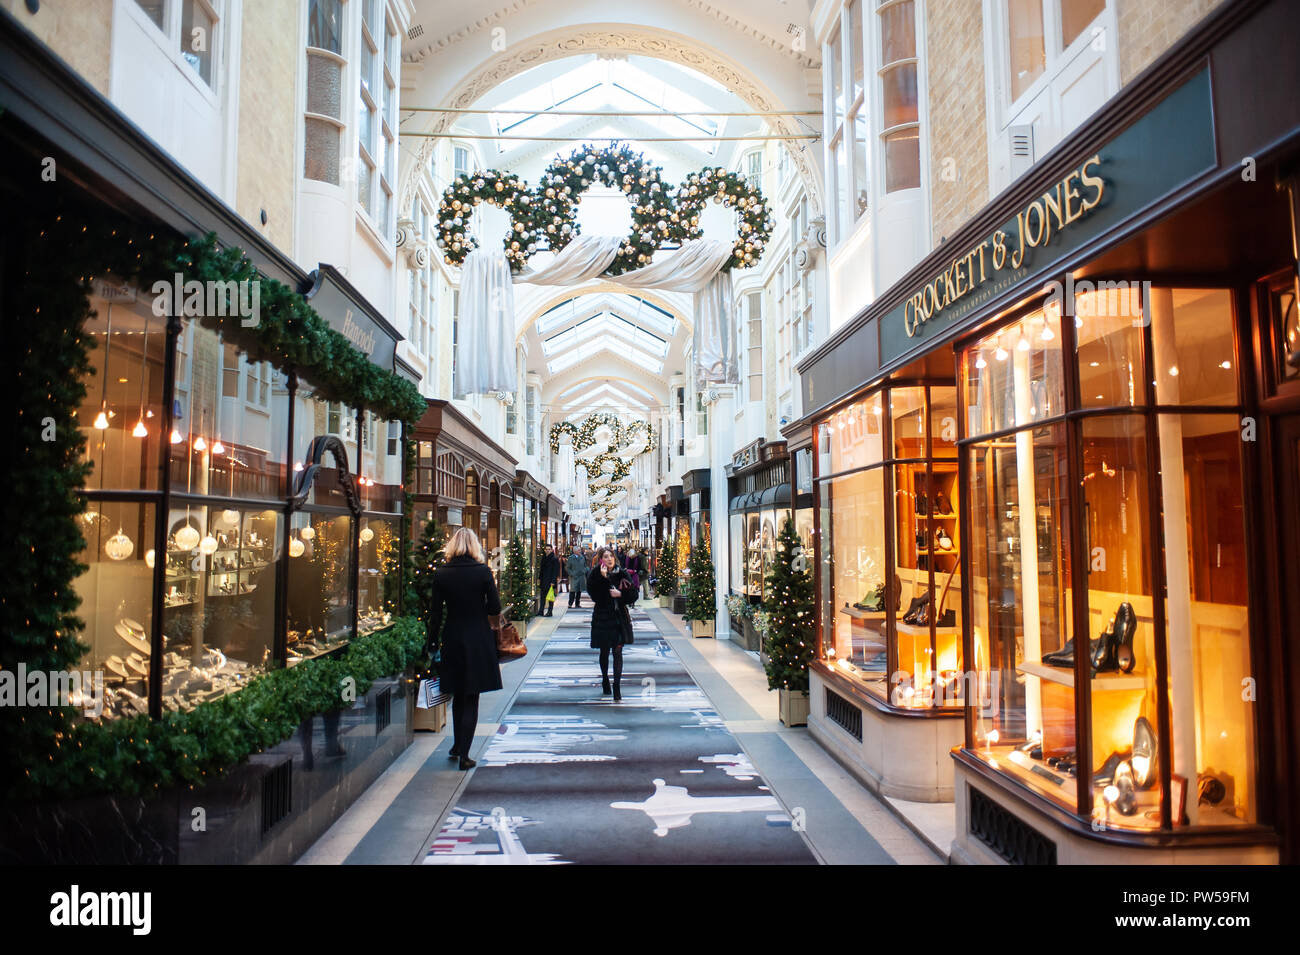 LONDON, UK - NOV 21: people stroll in the Burlington Arcade in London on November 21, 2013. It is one of the best-known London shopping arcades at Chr - Stock Image